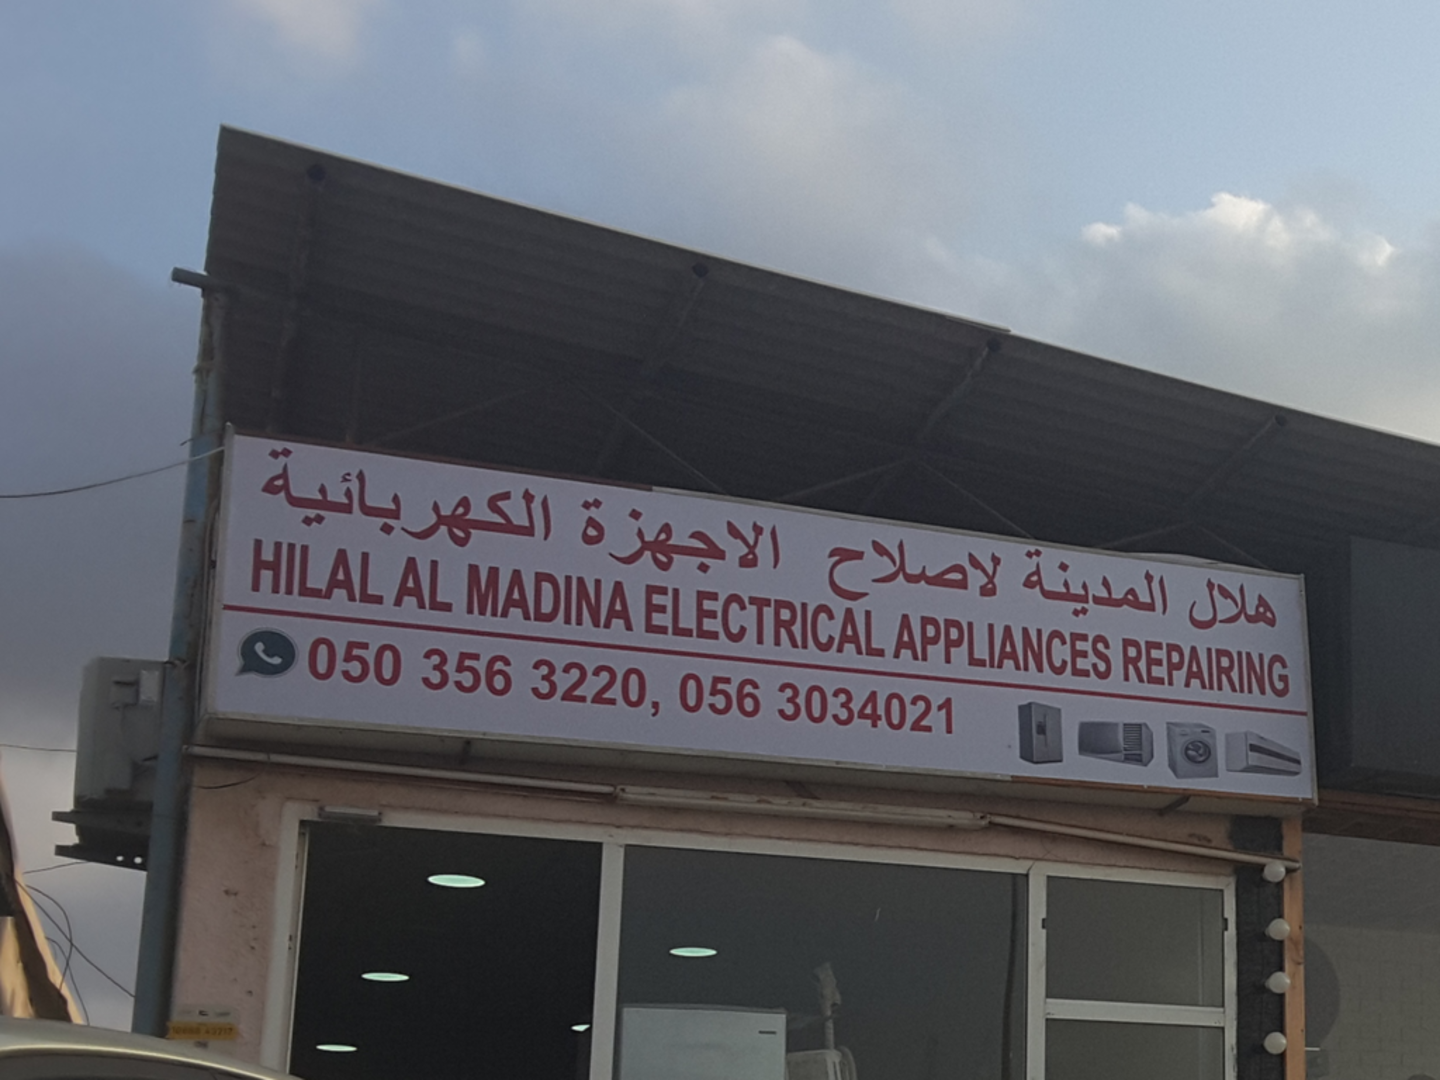 HiDubai-business-hilal-al-madina-electrical-appliances-repairing-home-internet-tv-mobile-hatta-dubai